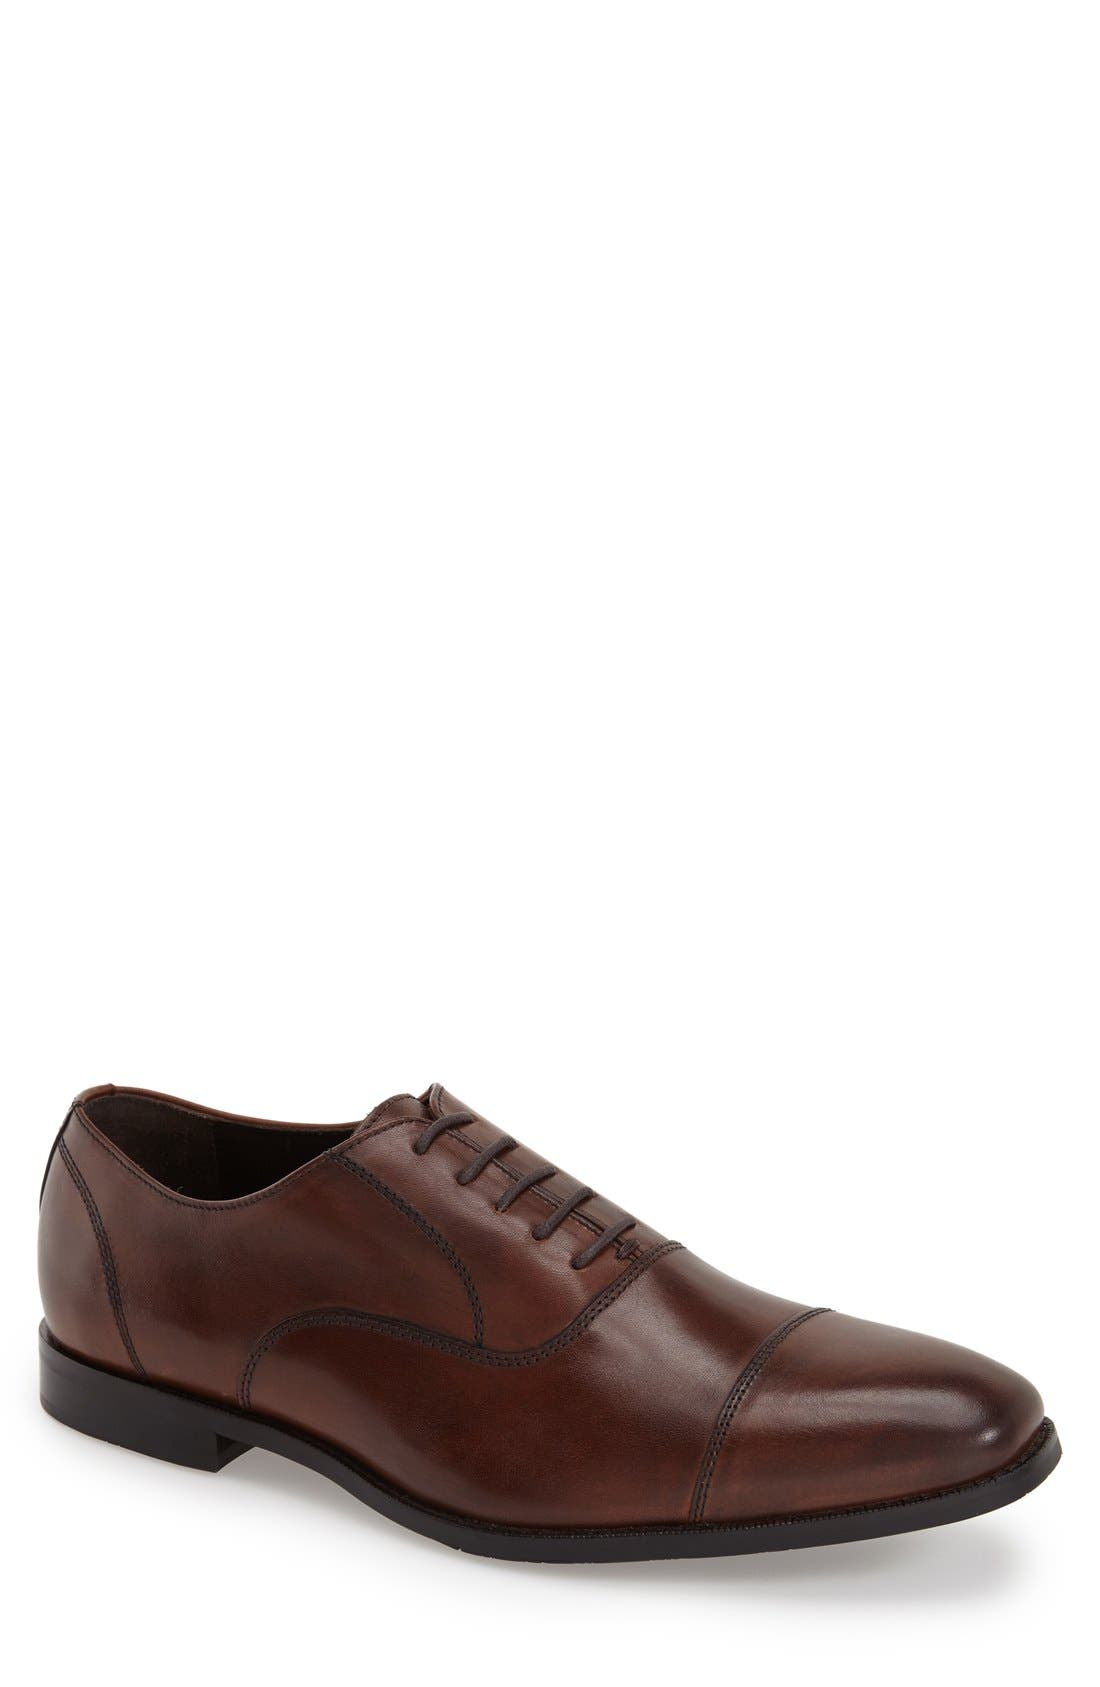 'Dillon' Cap Toe Oxford,                         Main,                         color, Chestnut Leather